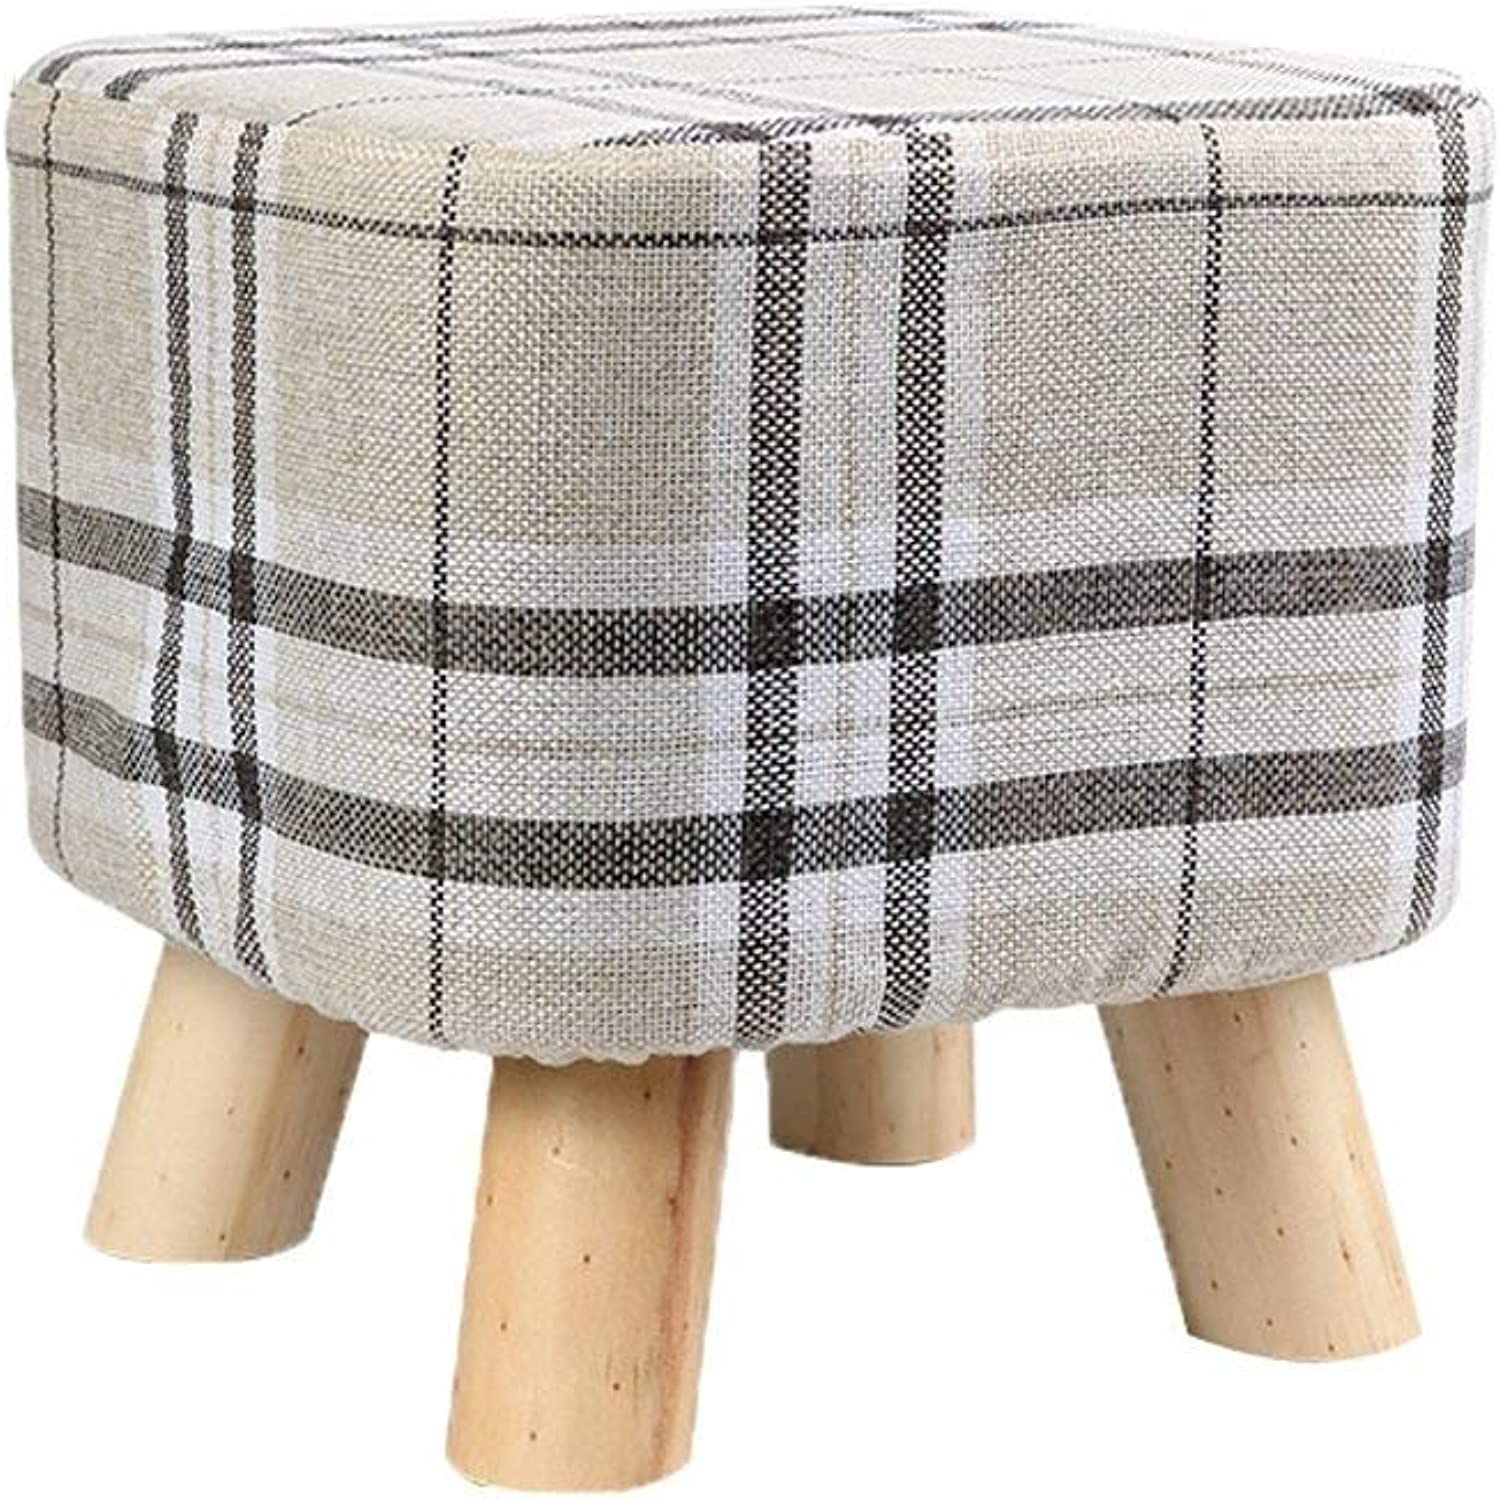 GJD Solid Wood shoes Bench Low Stool Fabric Stool Home Chair shoes Bench Stool Sofa Bench - Small Stool (color   E)